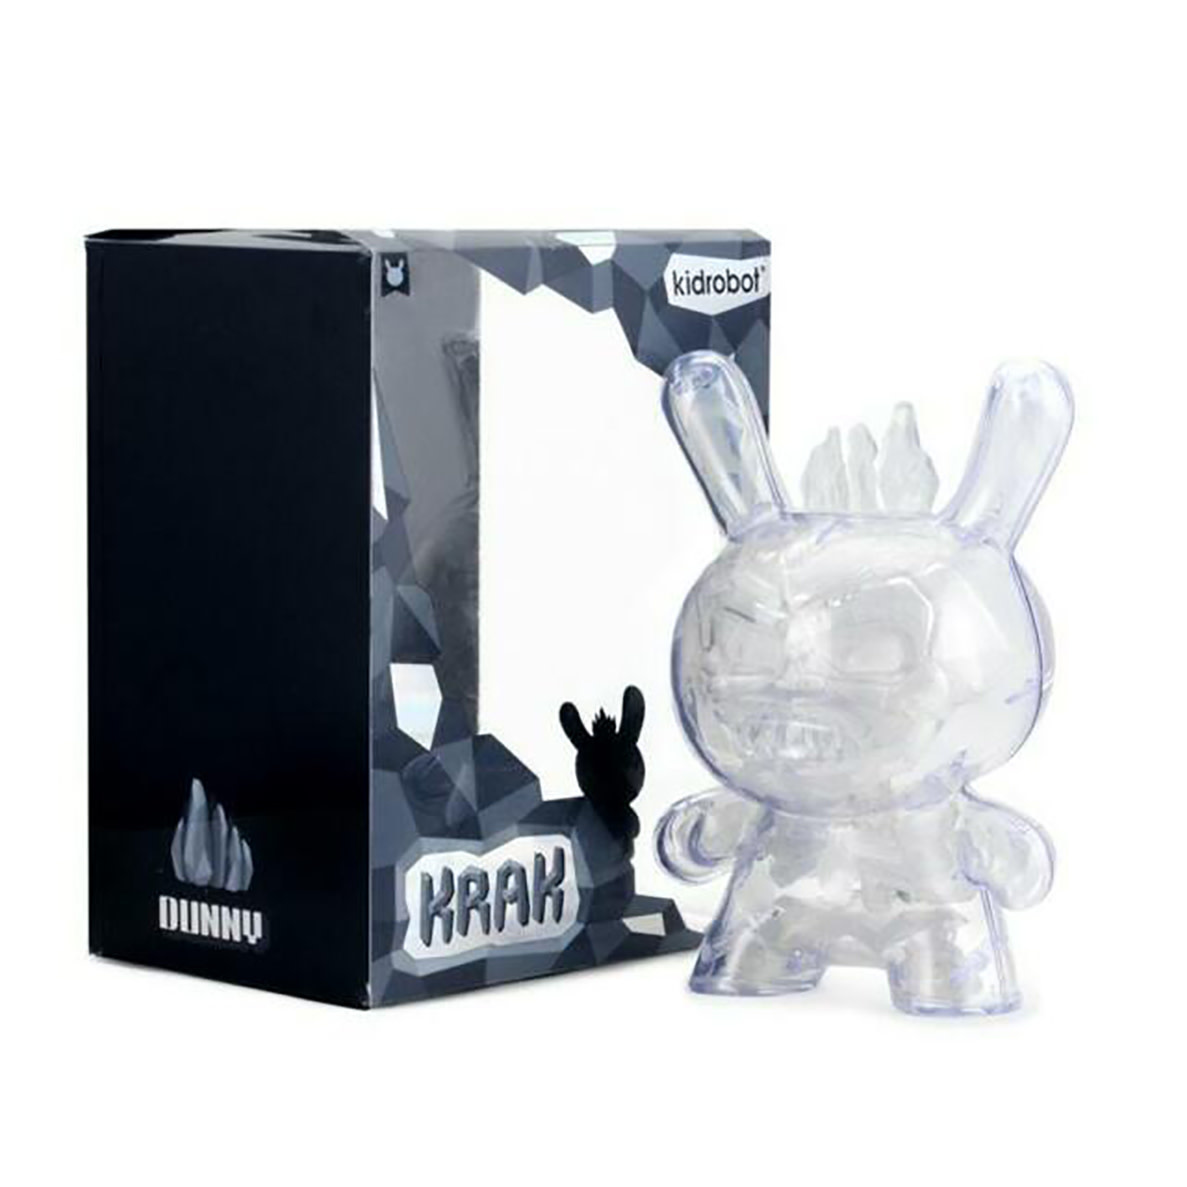 Kidrobot Dunny: Crystal 8 inch Krak Dunny by Scott Tolleson